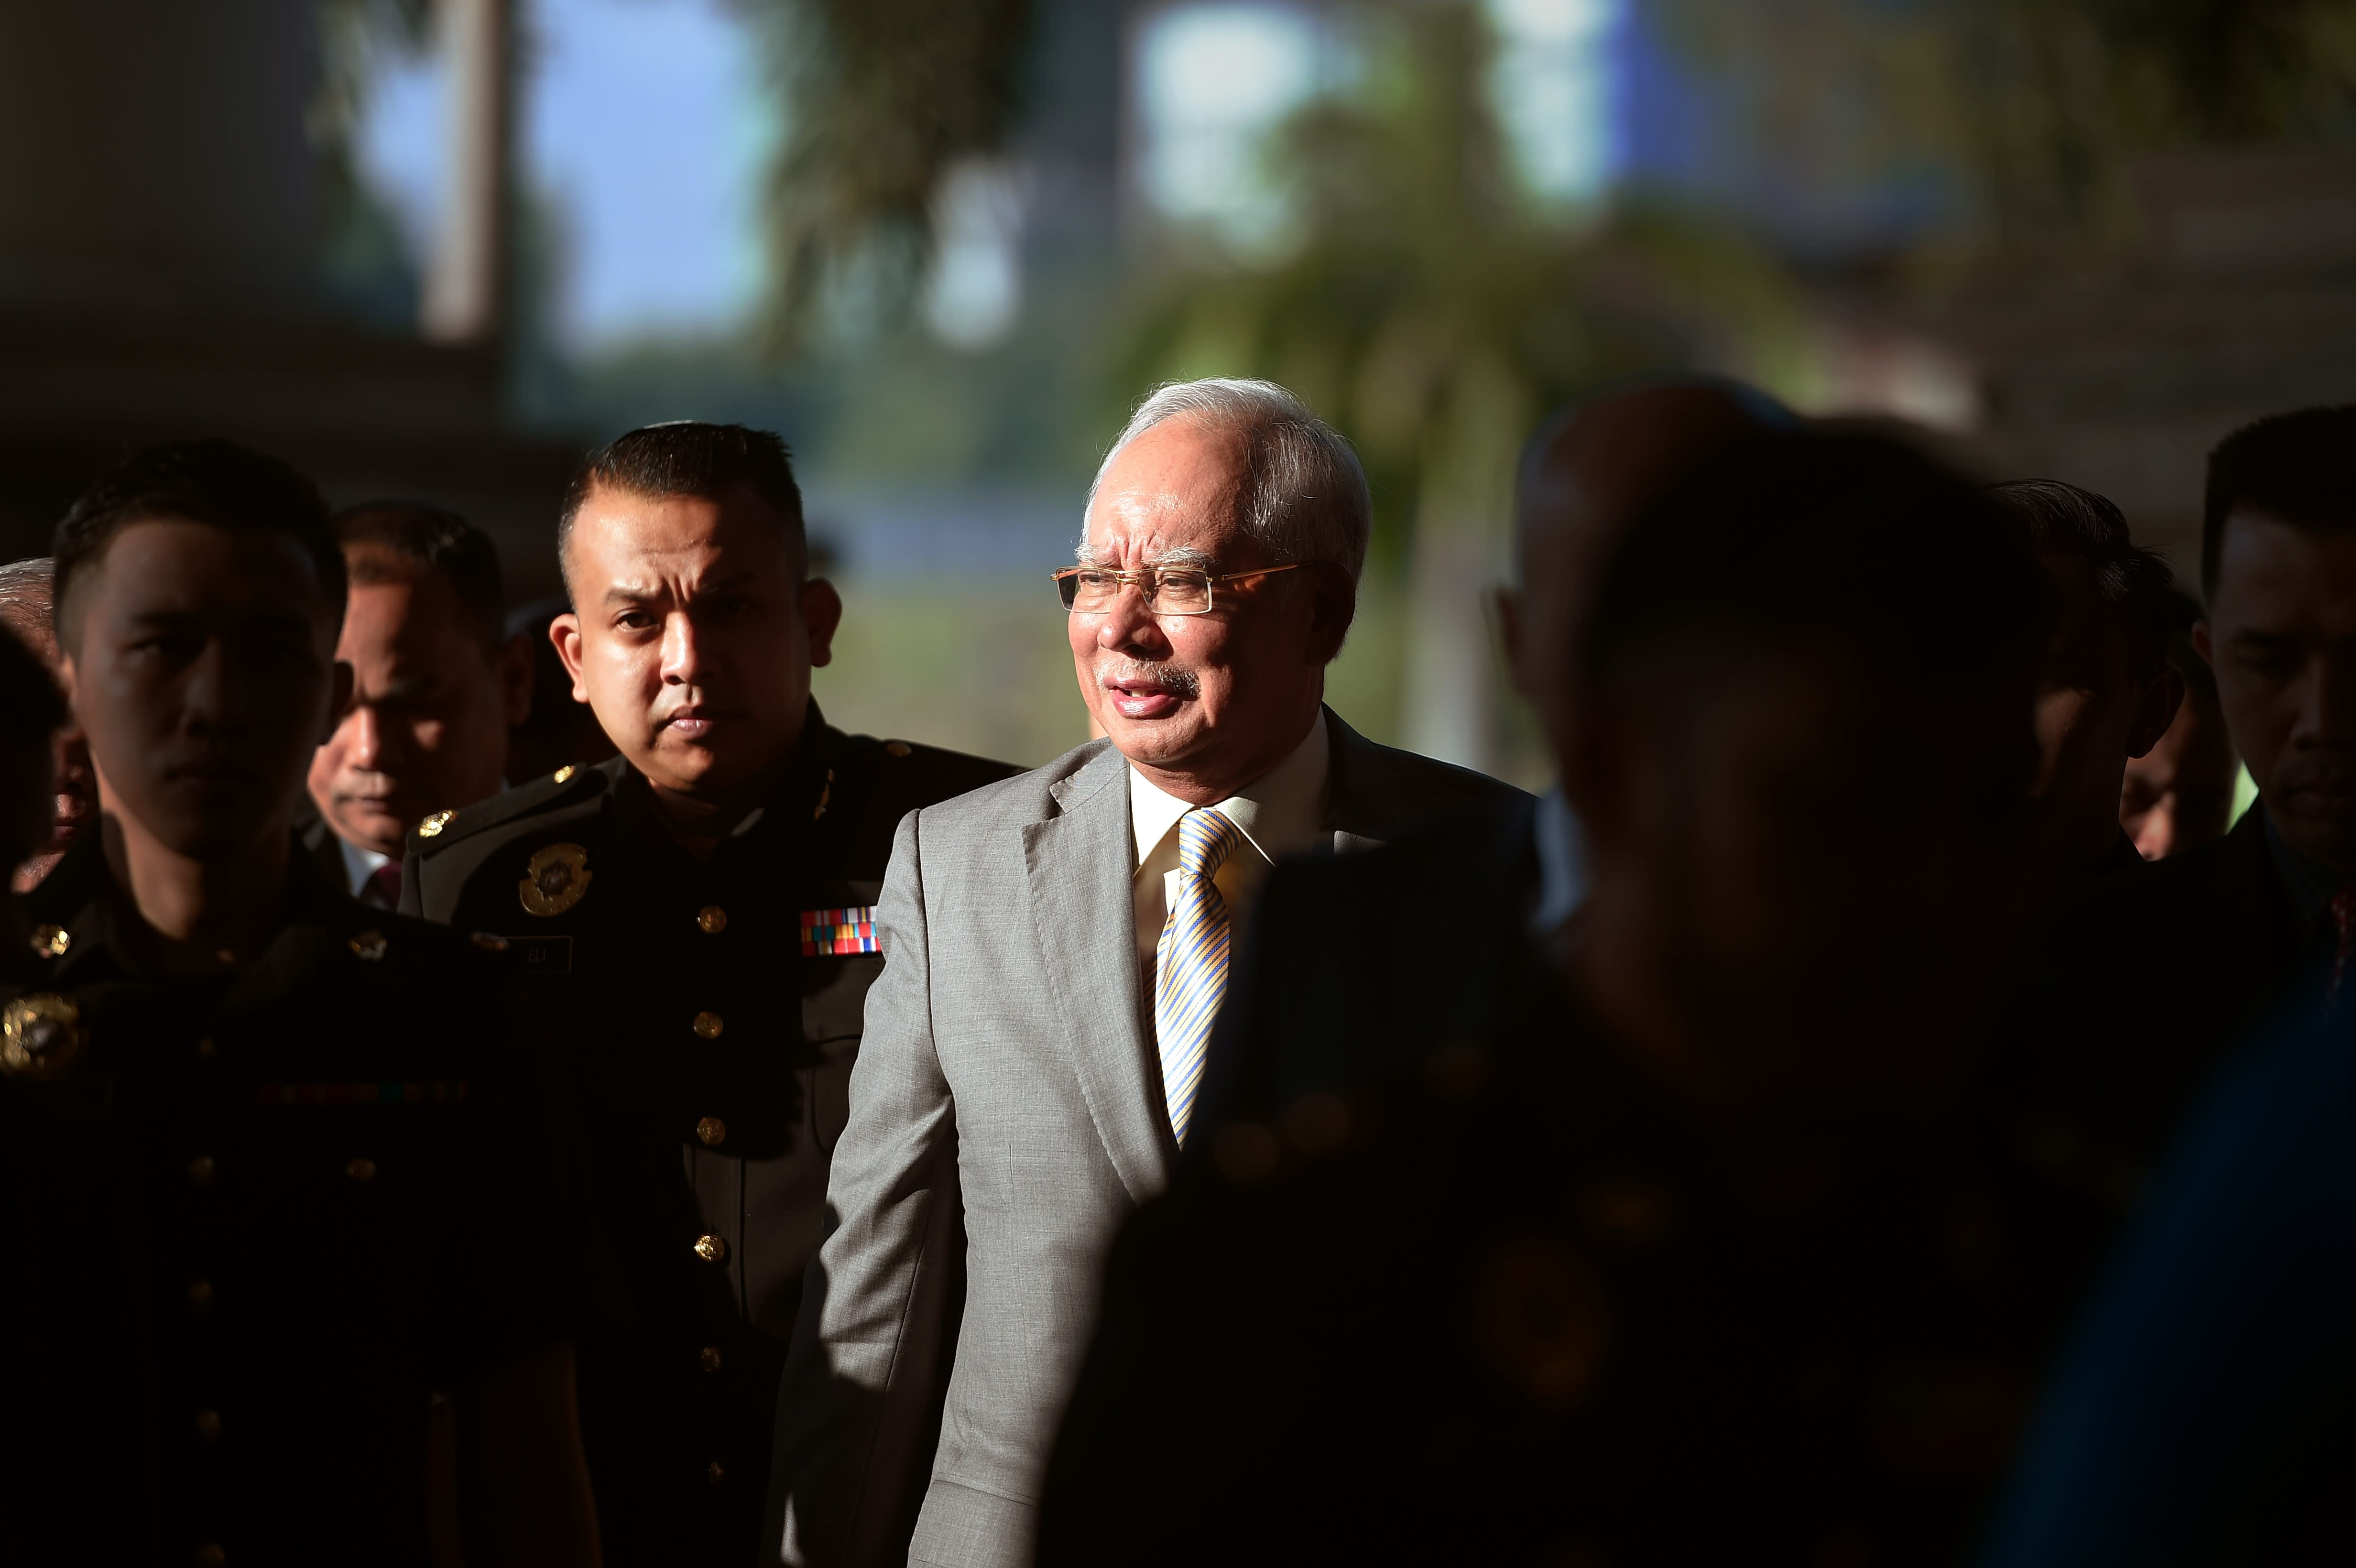 Former Malaysian Prime Minister Najib Razak found guilty of all seven charges related to 1MDB scandal